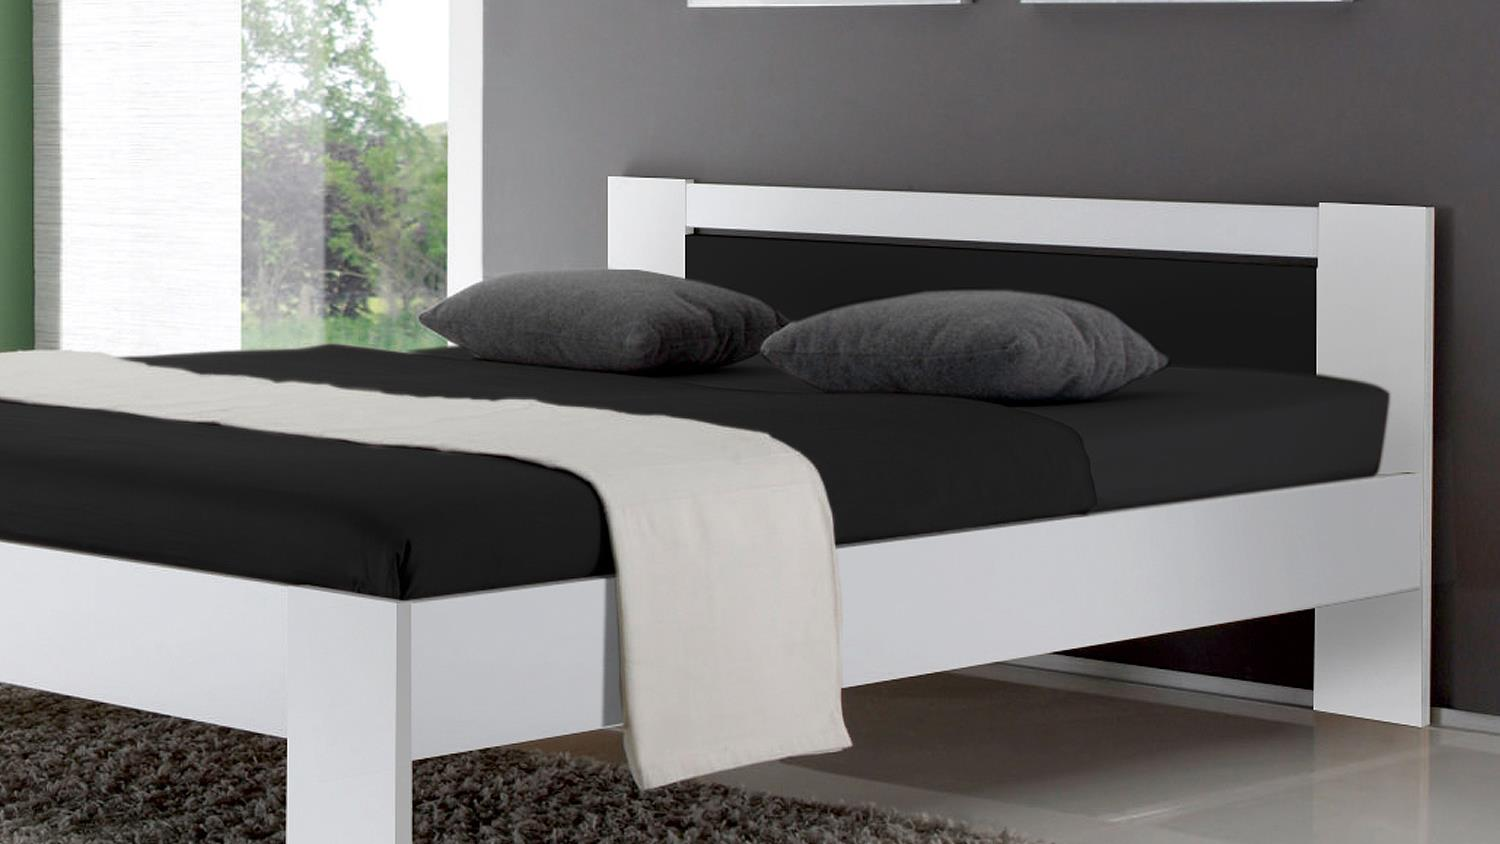 bett vega futonbett in schwarz wei mit rollrost und. Black Bedroom Furniture Sets. Home Design Ideas